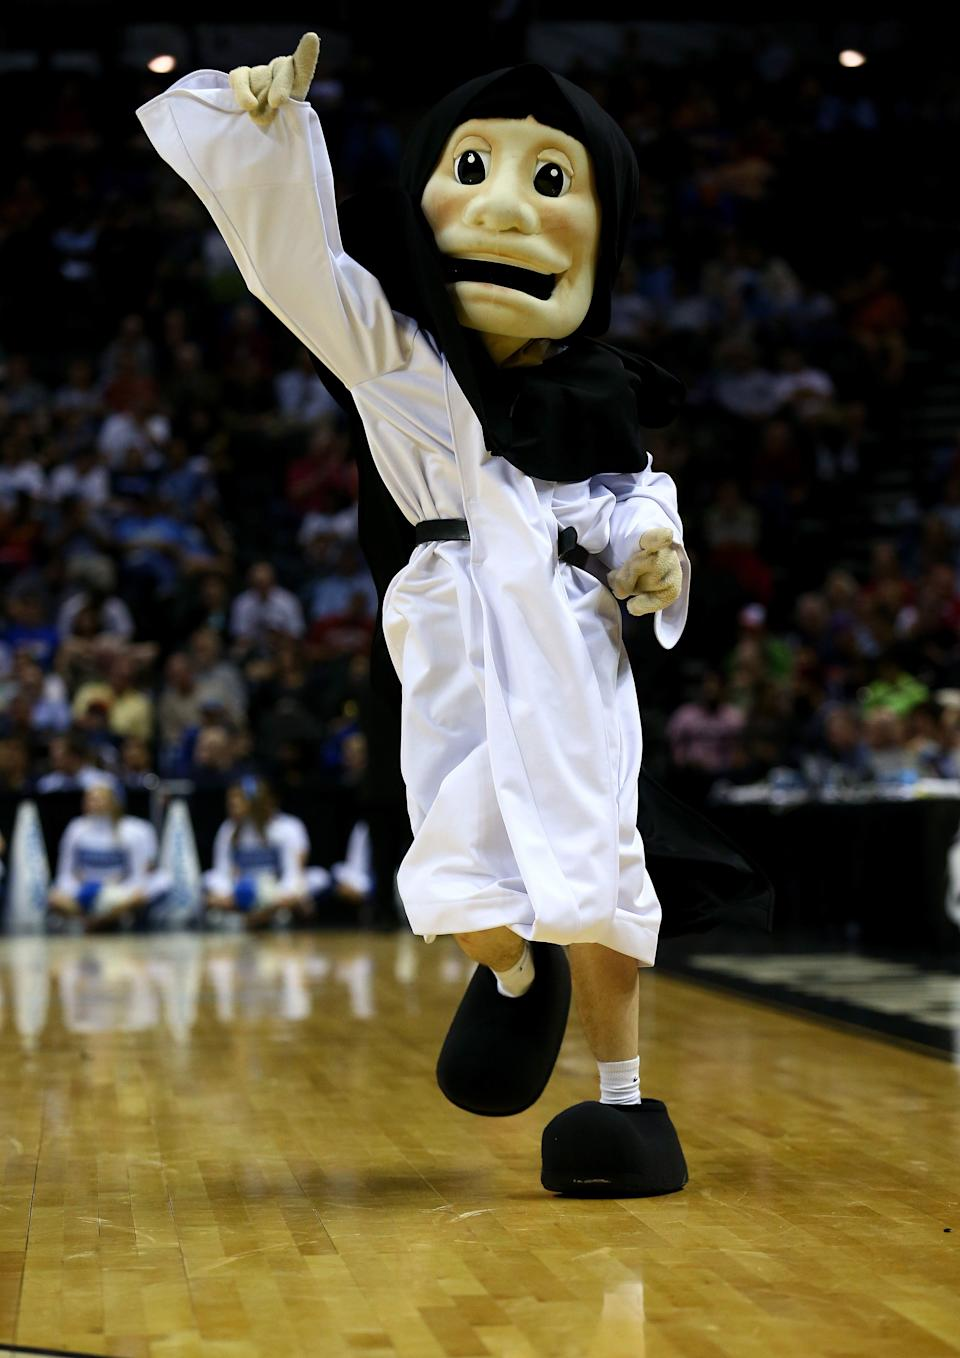 SAN ANTONIO, TX - MARCH 21: The Providence Friars mascot performs during a first half timeout against the North Carolina Tar Heels  during the second round of the 2014 NCAA Men's Basketball Tournament at AT&T Center on March 21, 2014 in San Antonio, Texas.  (Photo by Tom Pennington/Getty Images)